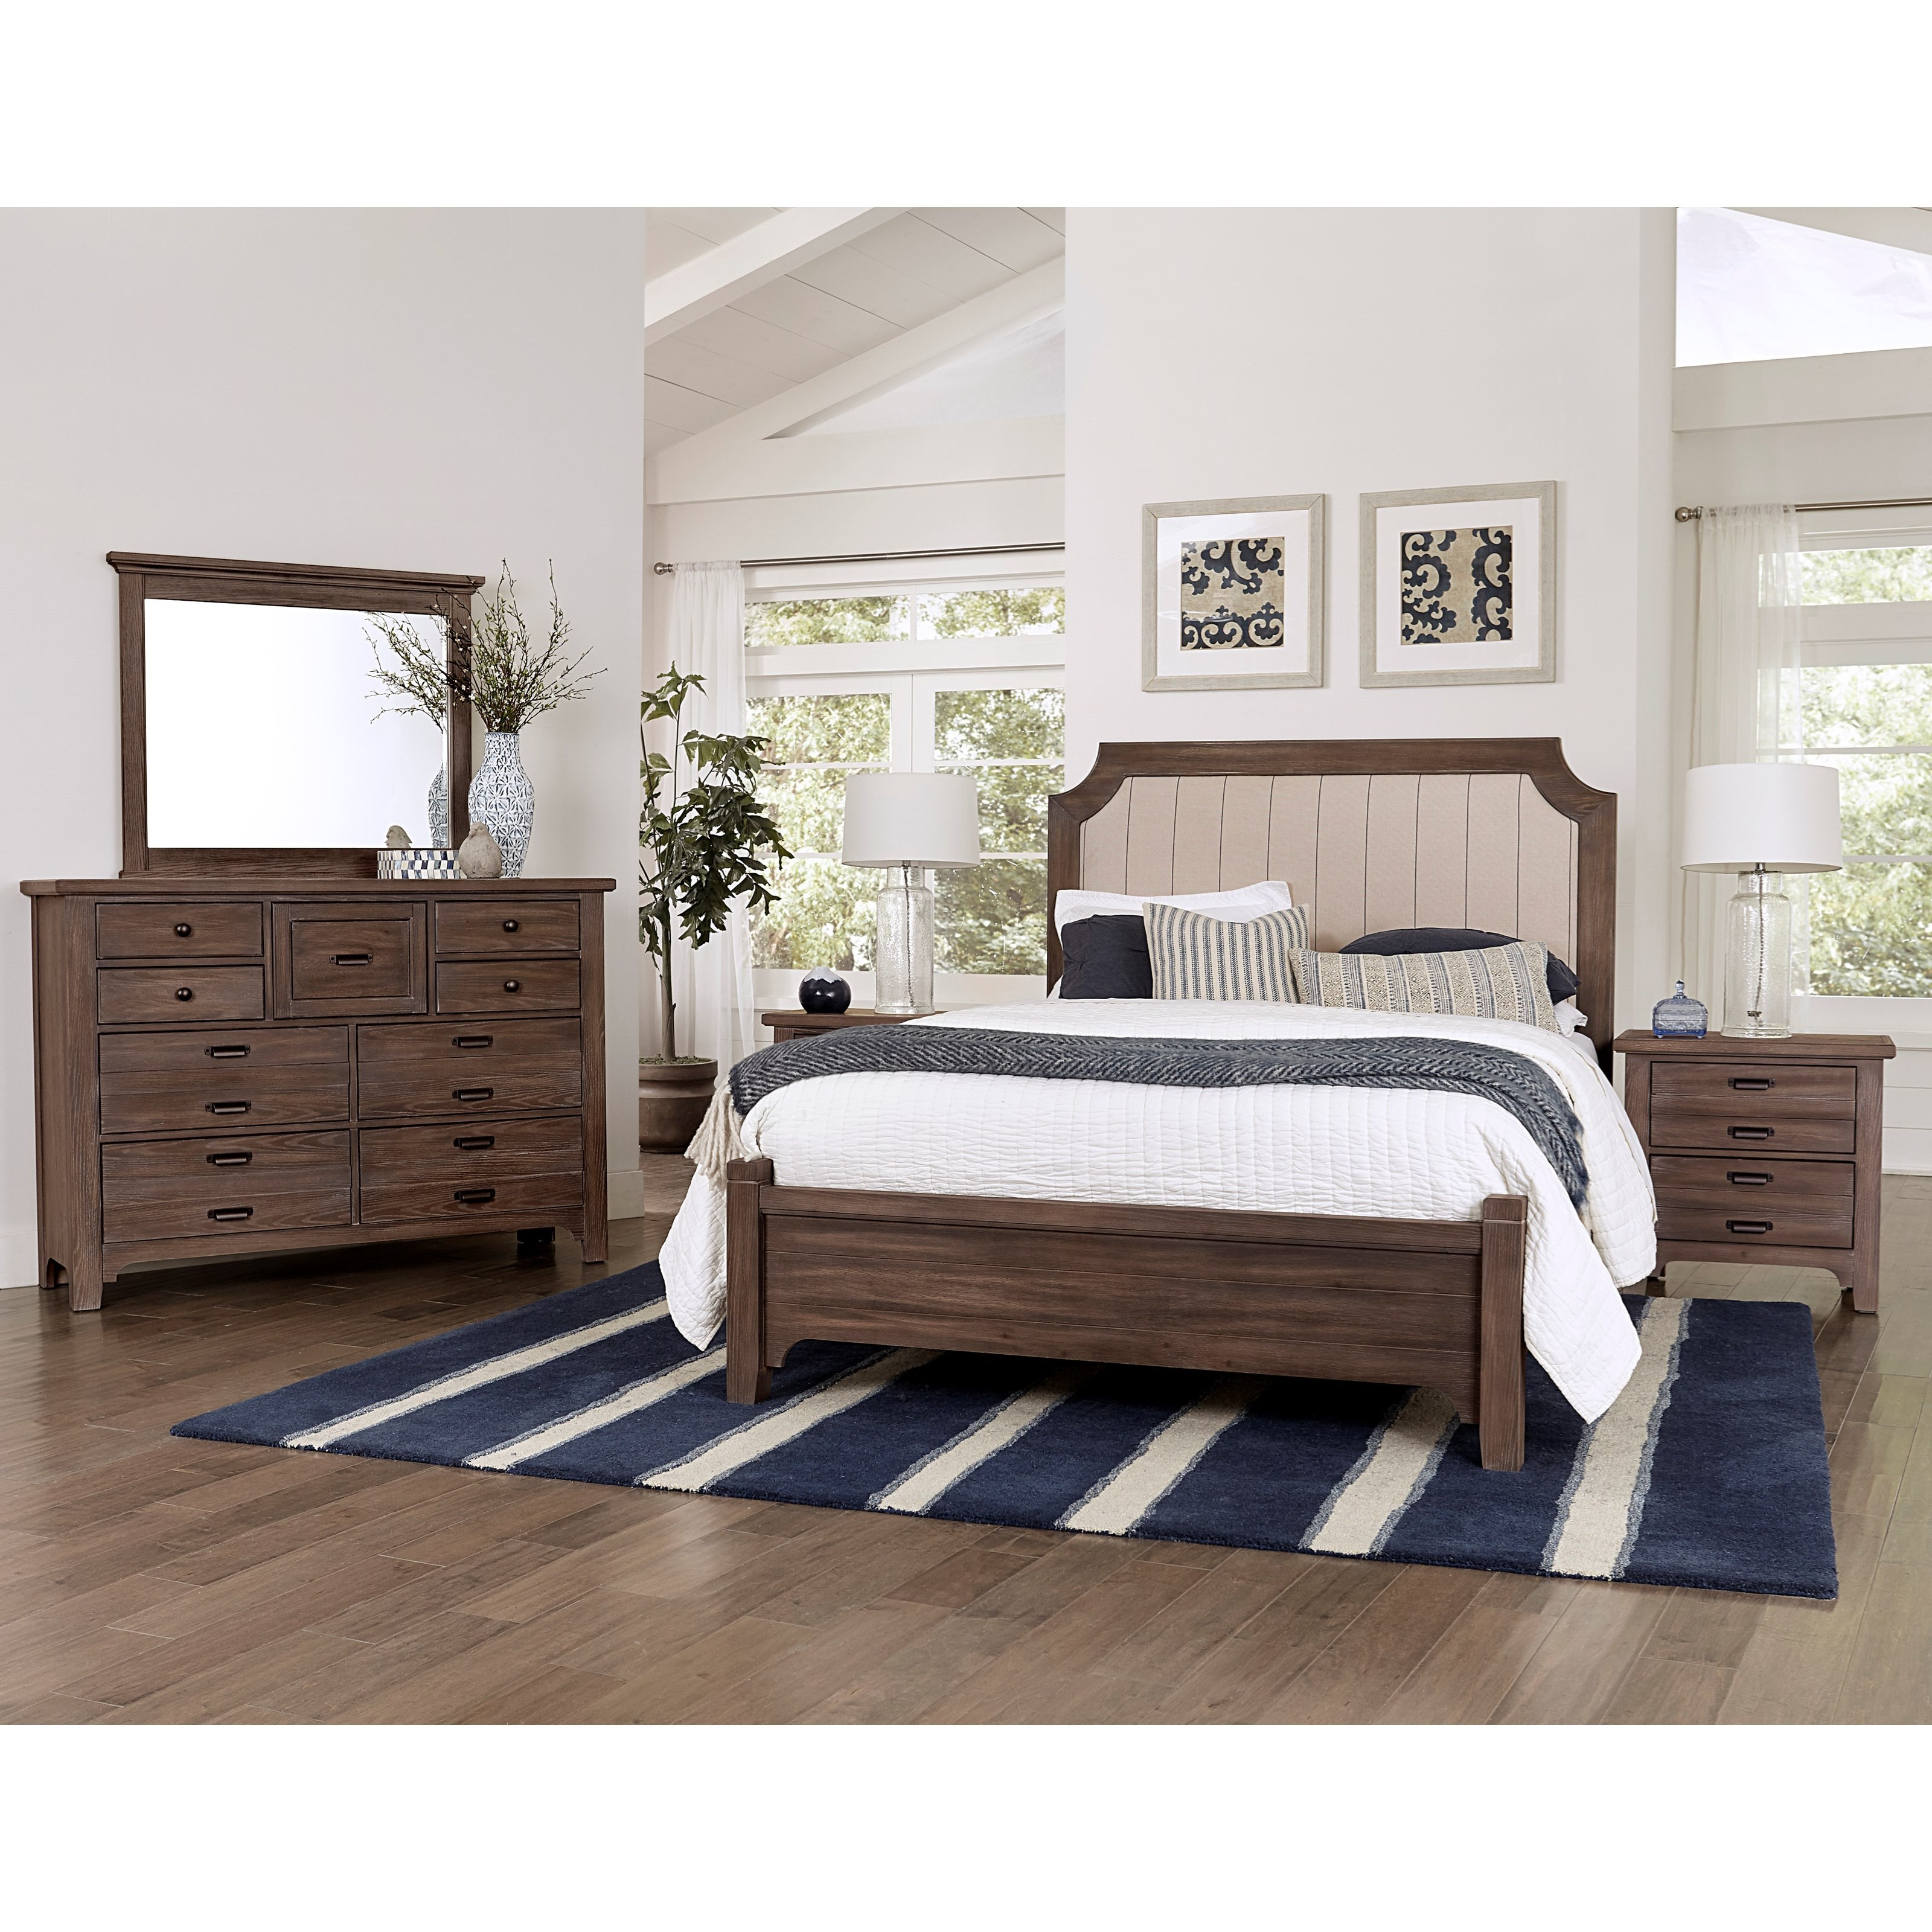 Bungalow Queen Bedroom Group by Laurel Mercantile Co. at Home Collections Furniture